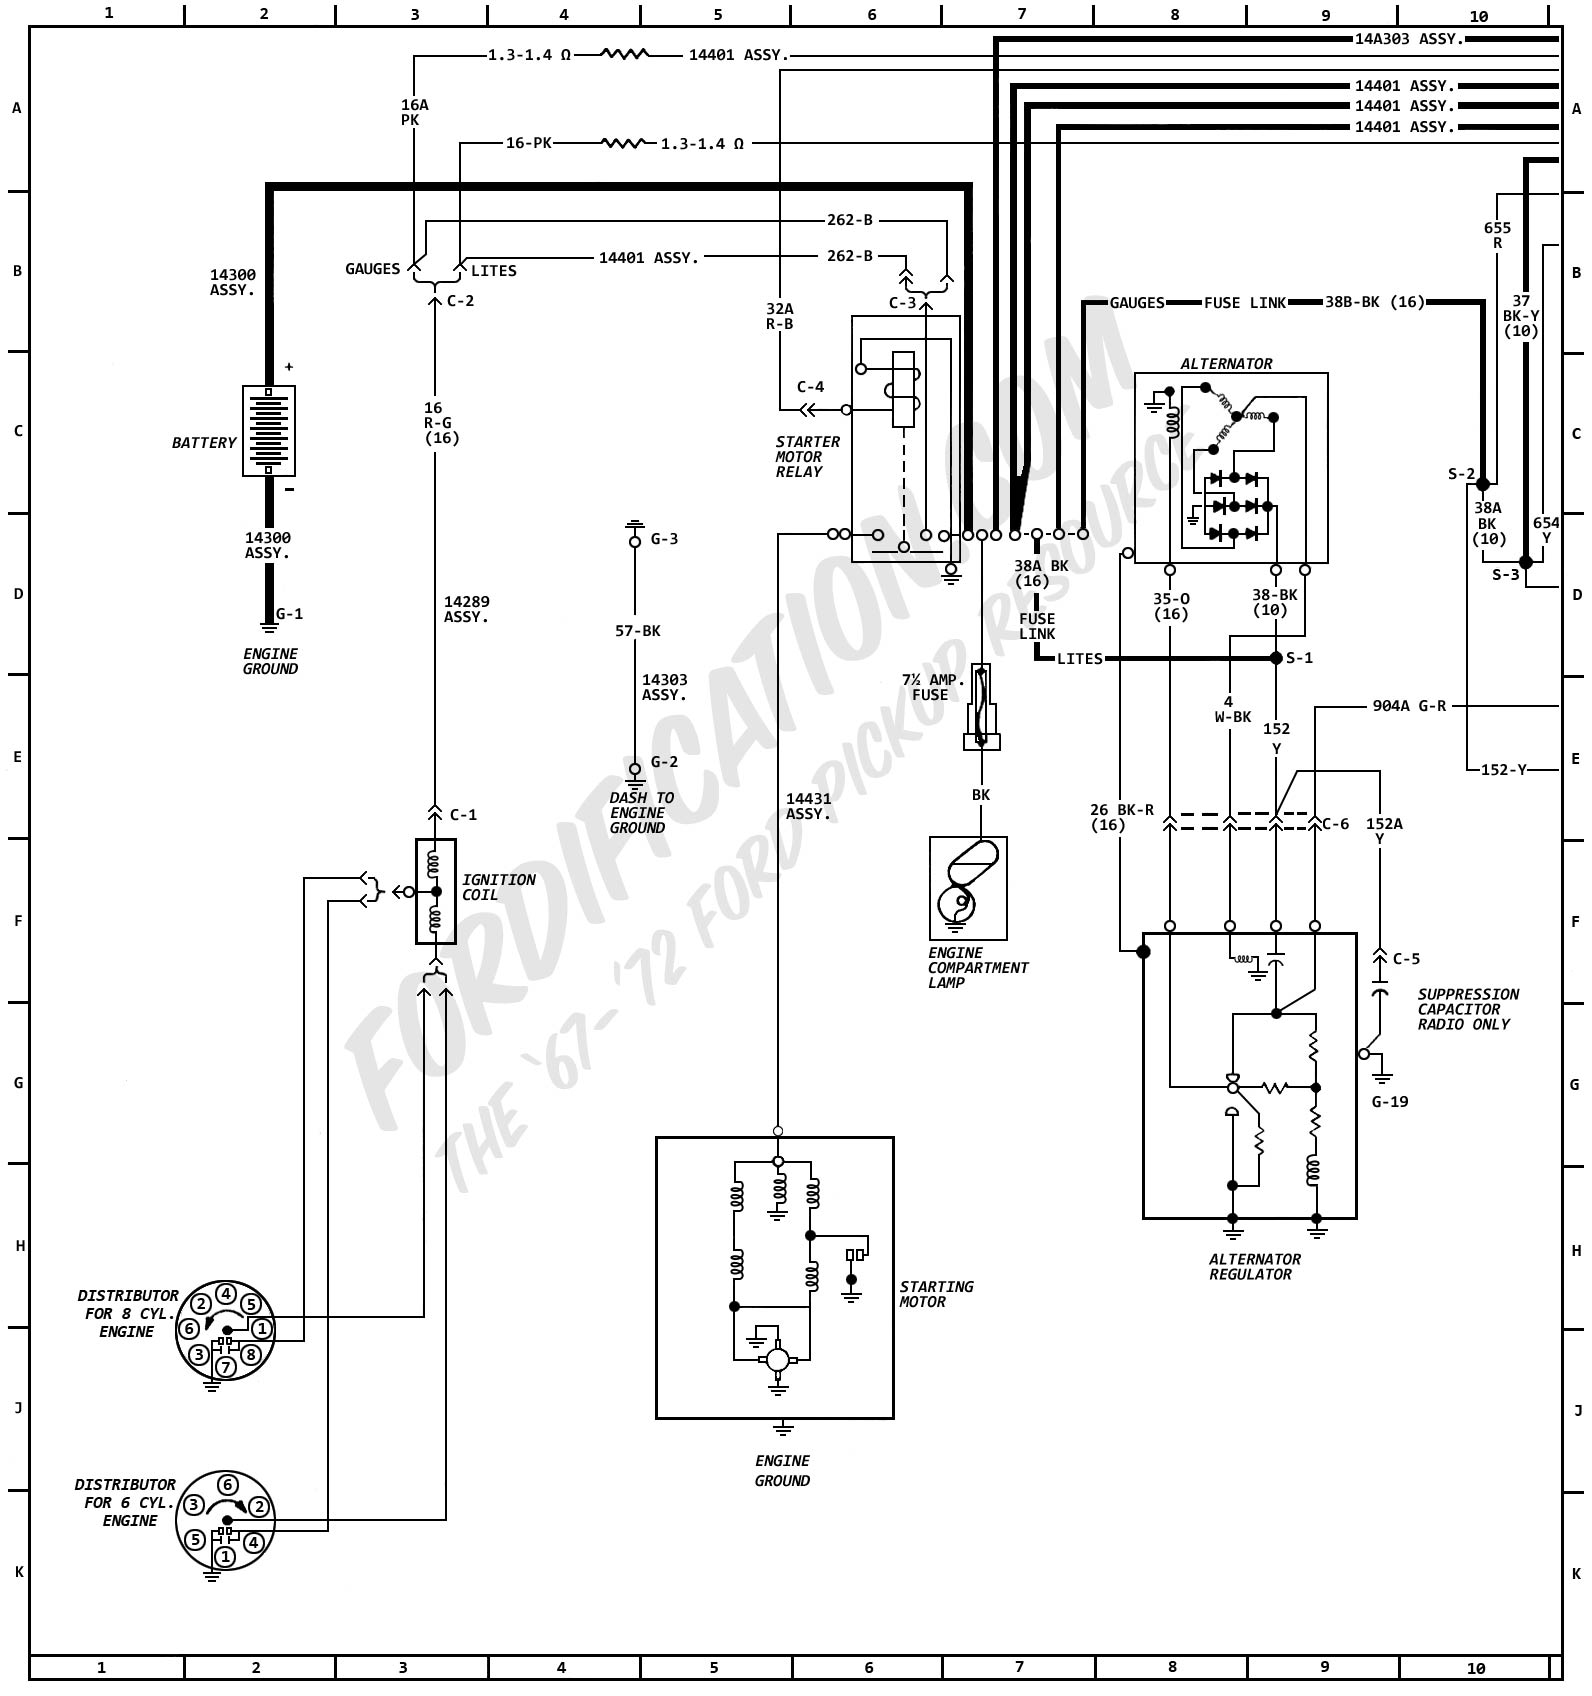 1972MasterWiring_01 1972 ford truck wiring diagrams fordification com wiring diagrams for ford trucks at virtualis.co